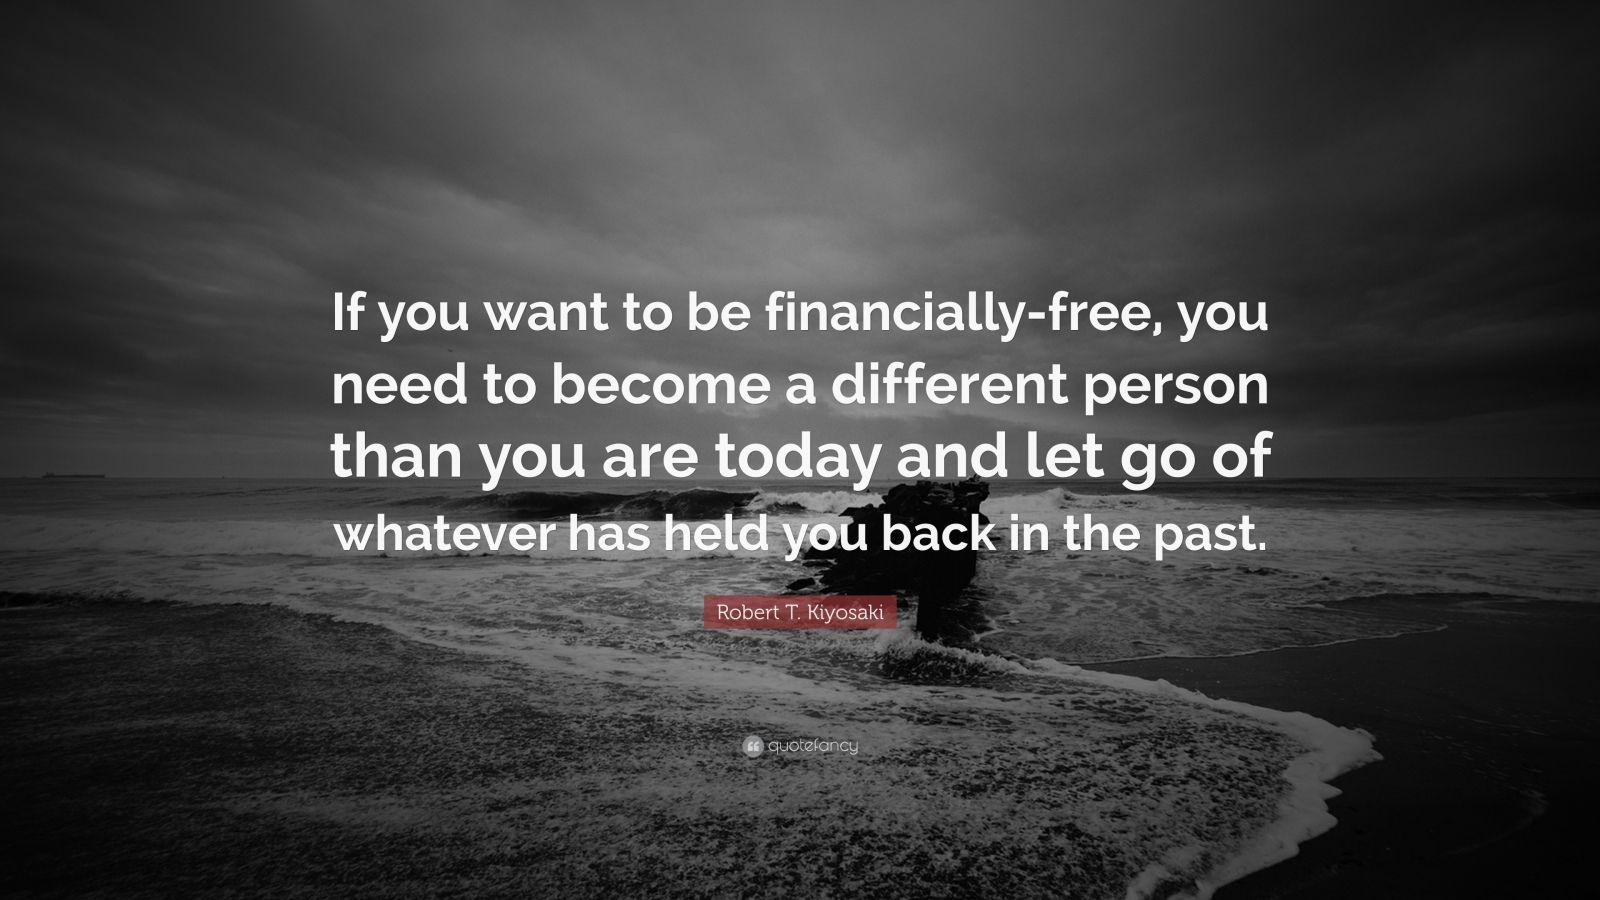 """Robert T. Kiyosaki Quote: """"If you want to be financially-free, you need to become a different person than you are today and let go of whatever has held you back in the past."""""""